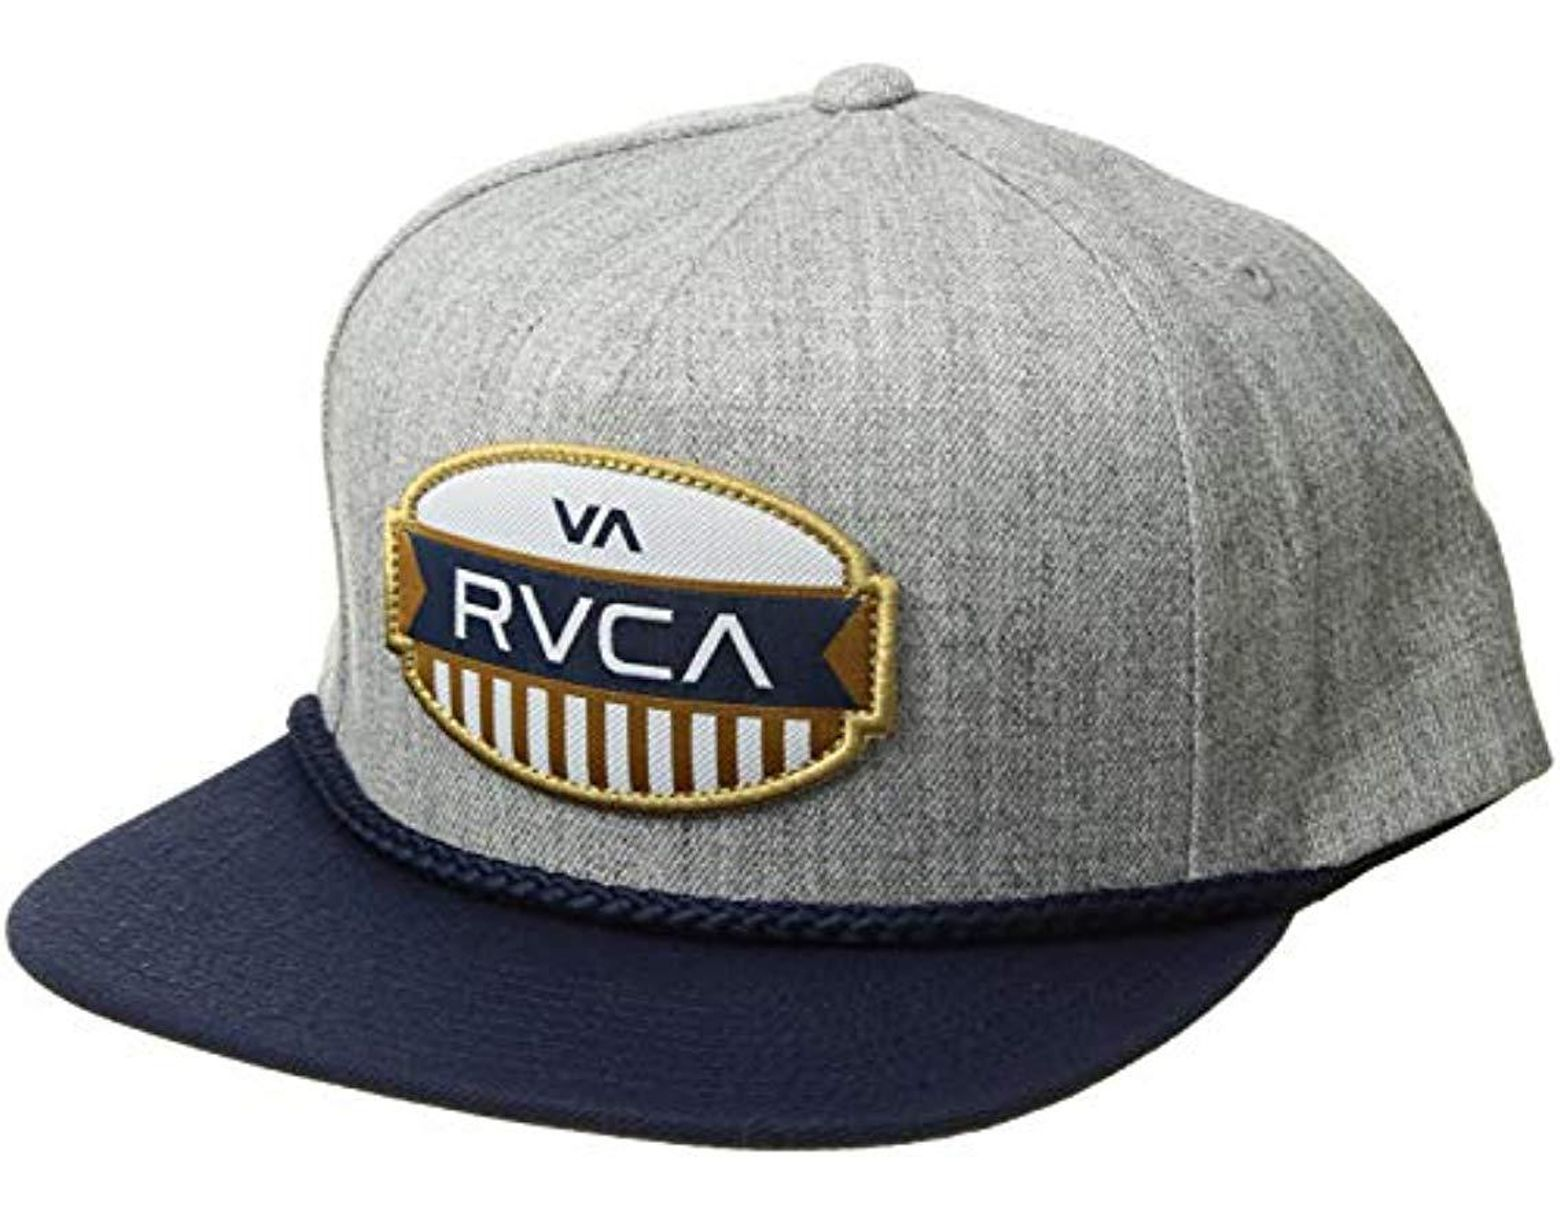 04fcb75ca1181b RVCA Grill Snapback Hat in Gray for Men - Save 19% - Lyst